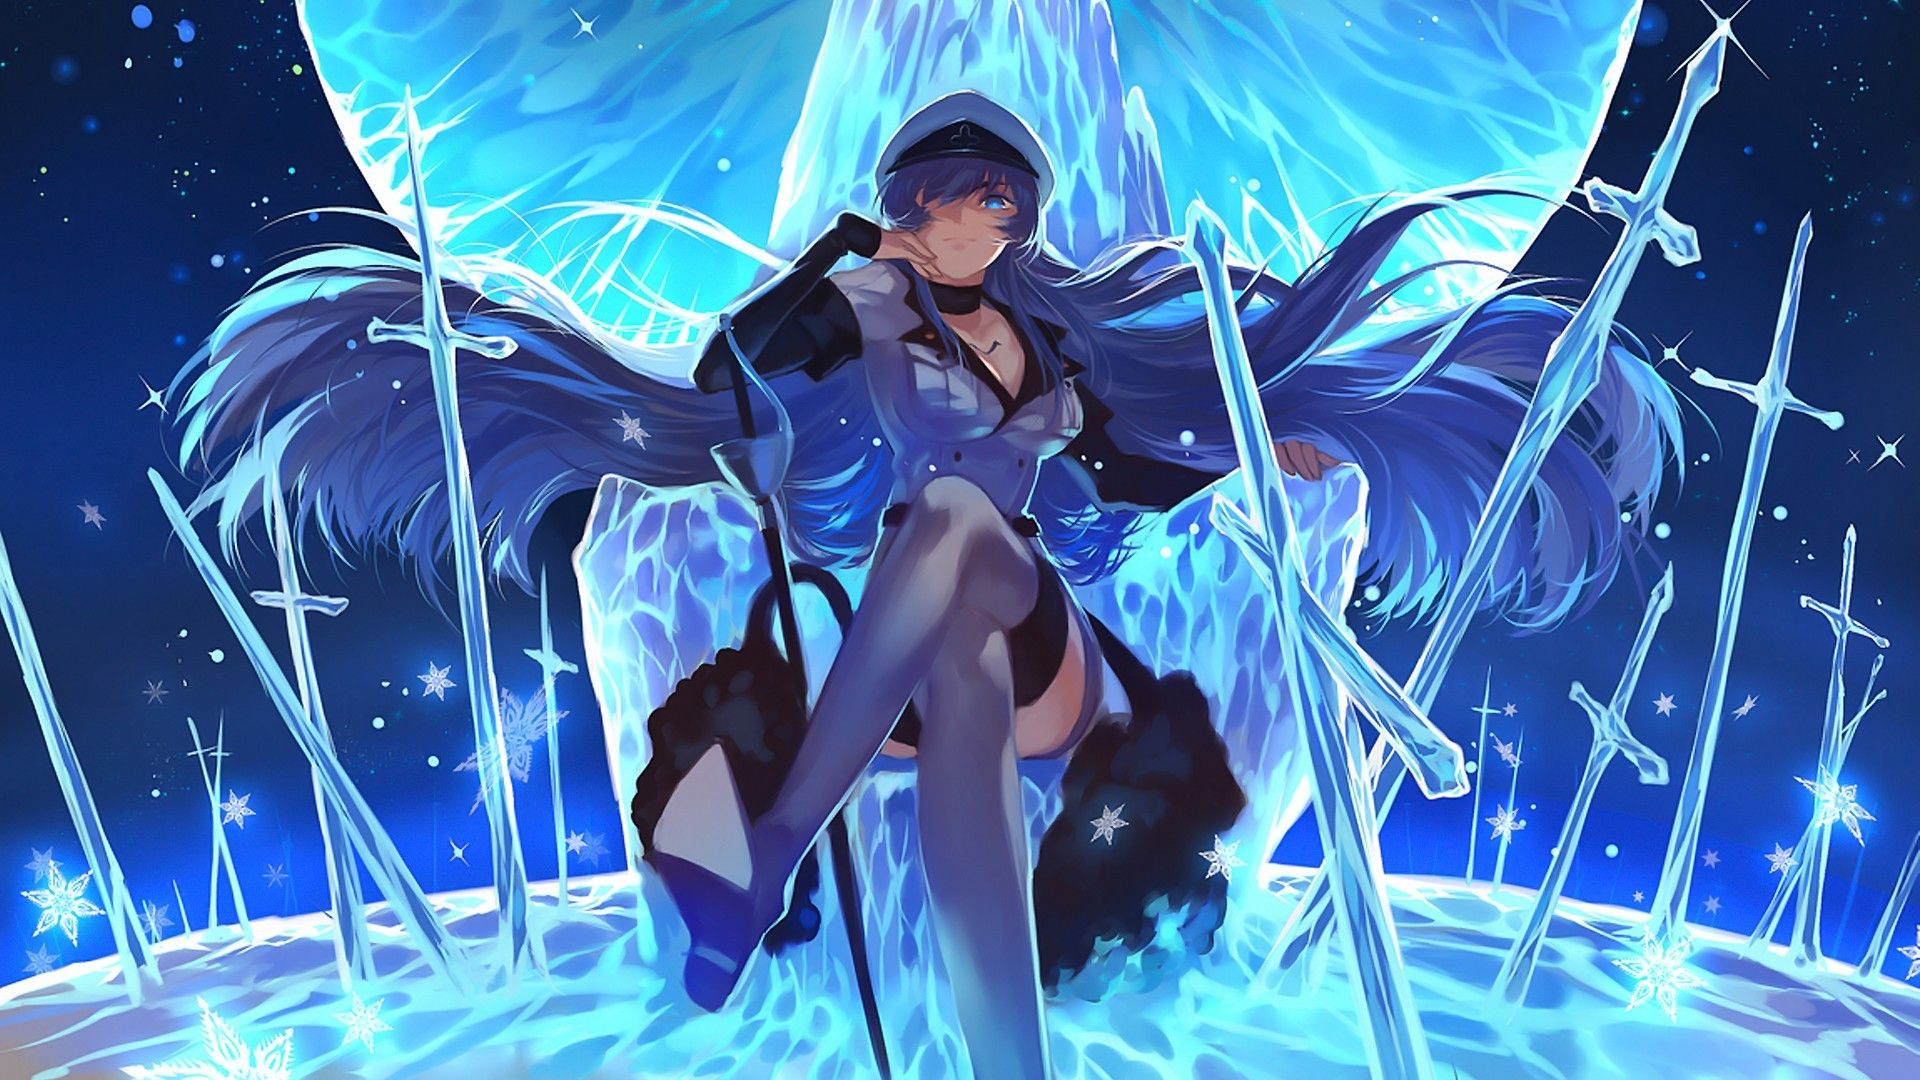 Anime Anime Girls Akame Ga Kill Esdeath Wallpapers Hd